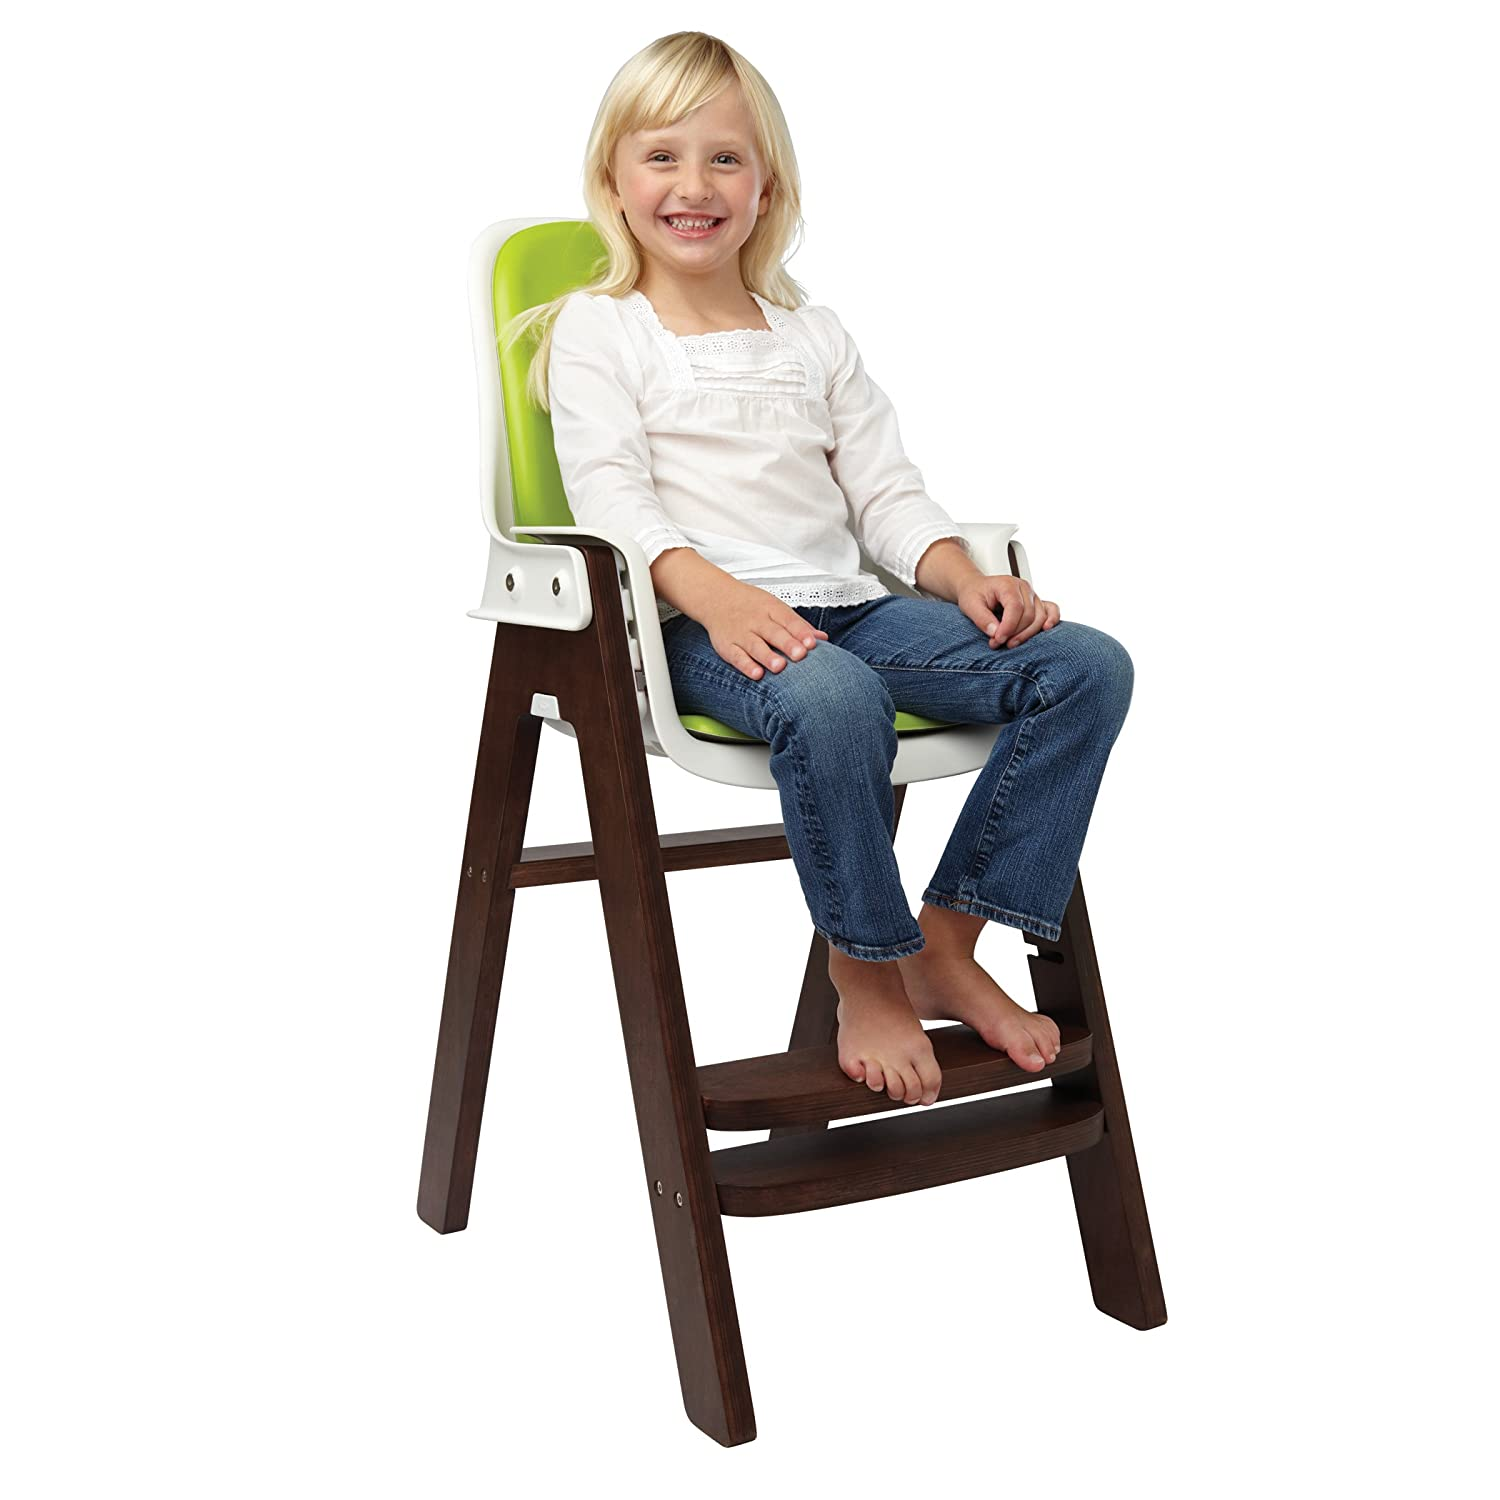 oxo tot sprout highchair (greenwalnut) amazoncouk baby -